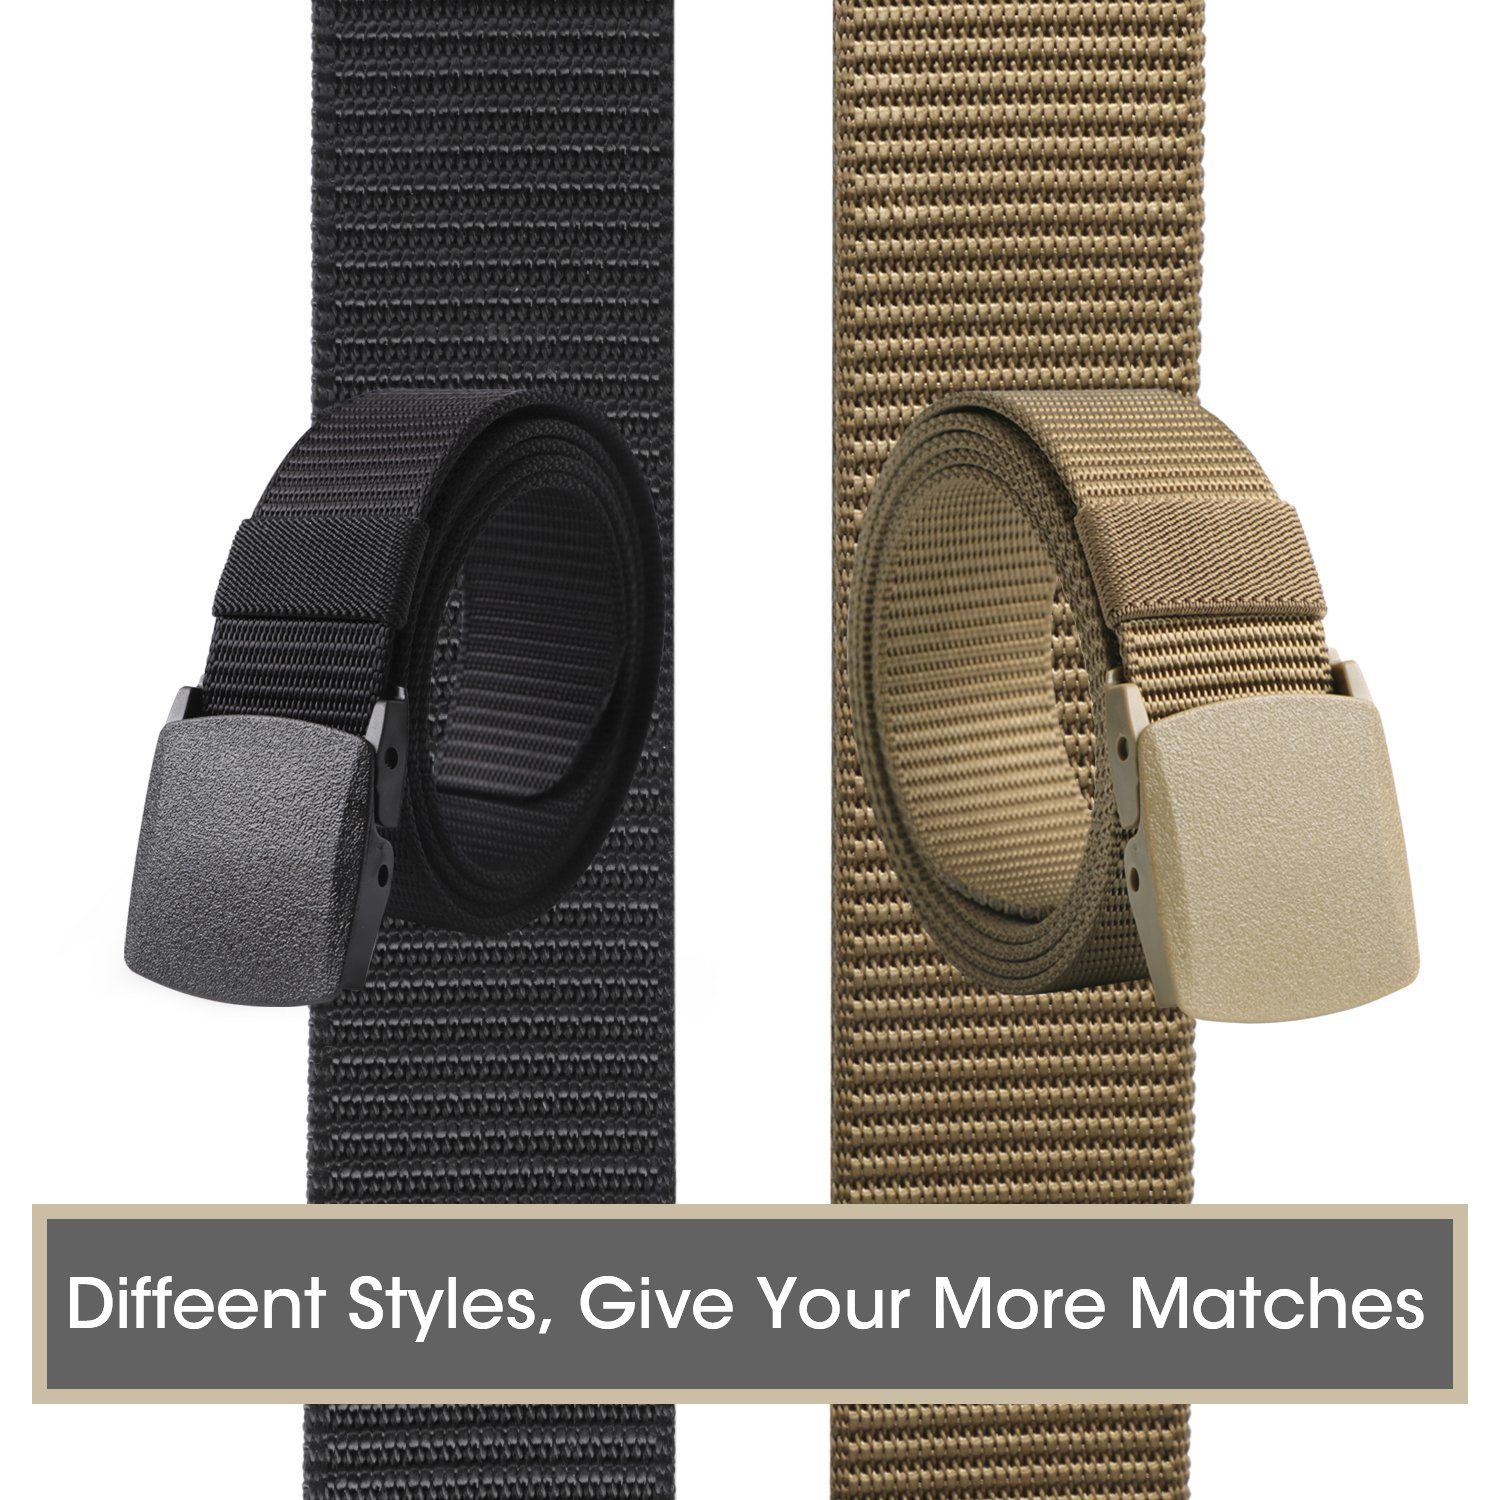 Nylon Military Tactical Belt 2 Pack Webbing Canvas Outdoor Web Belt With Plastic Buckle by JASGOOD (Image #2)